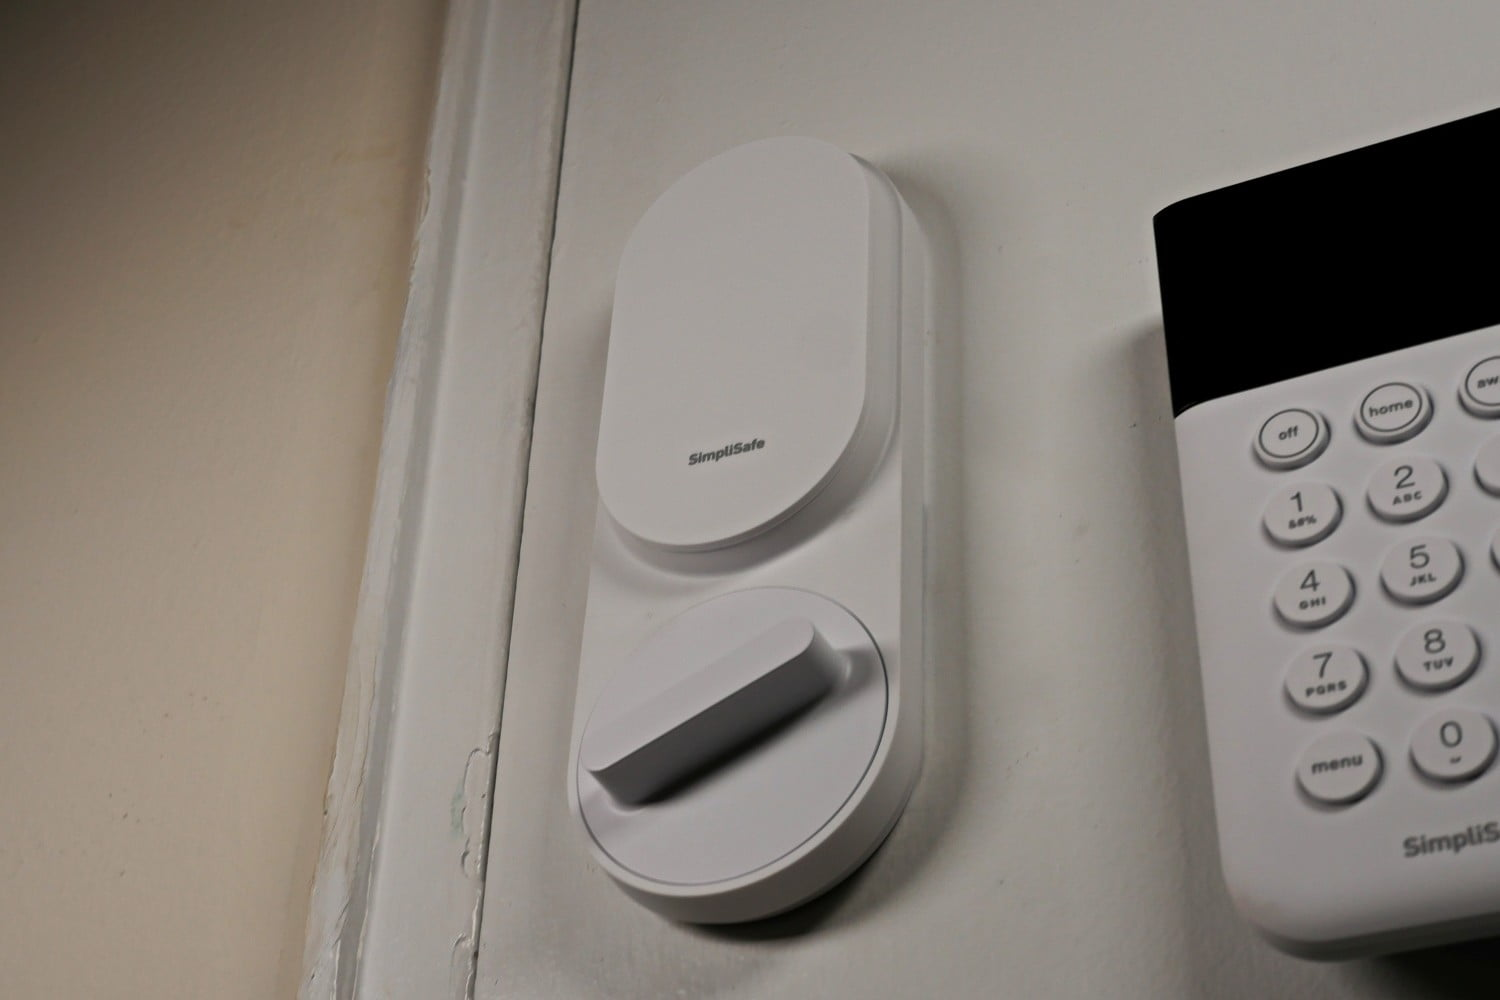 SimpliSafe Smart Lock Review: Gorgeous, and easy to install